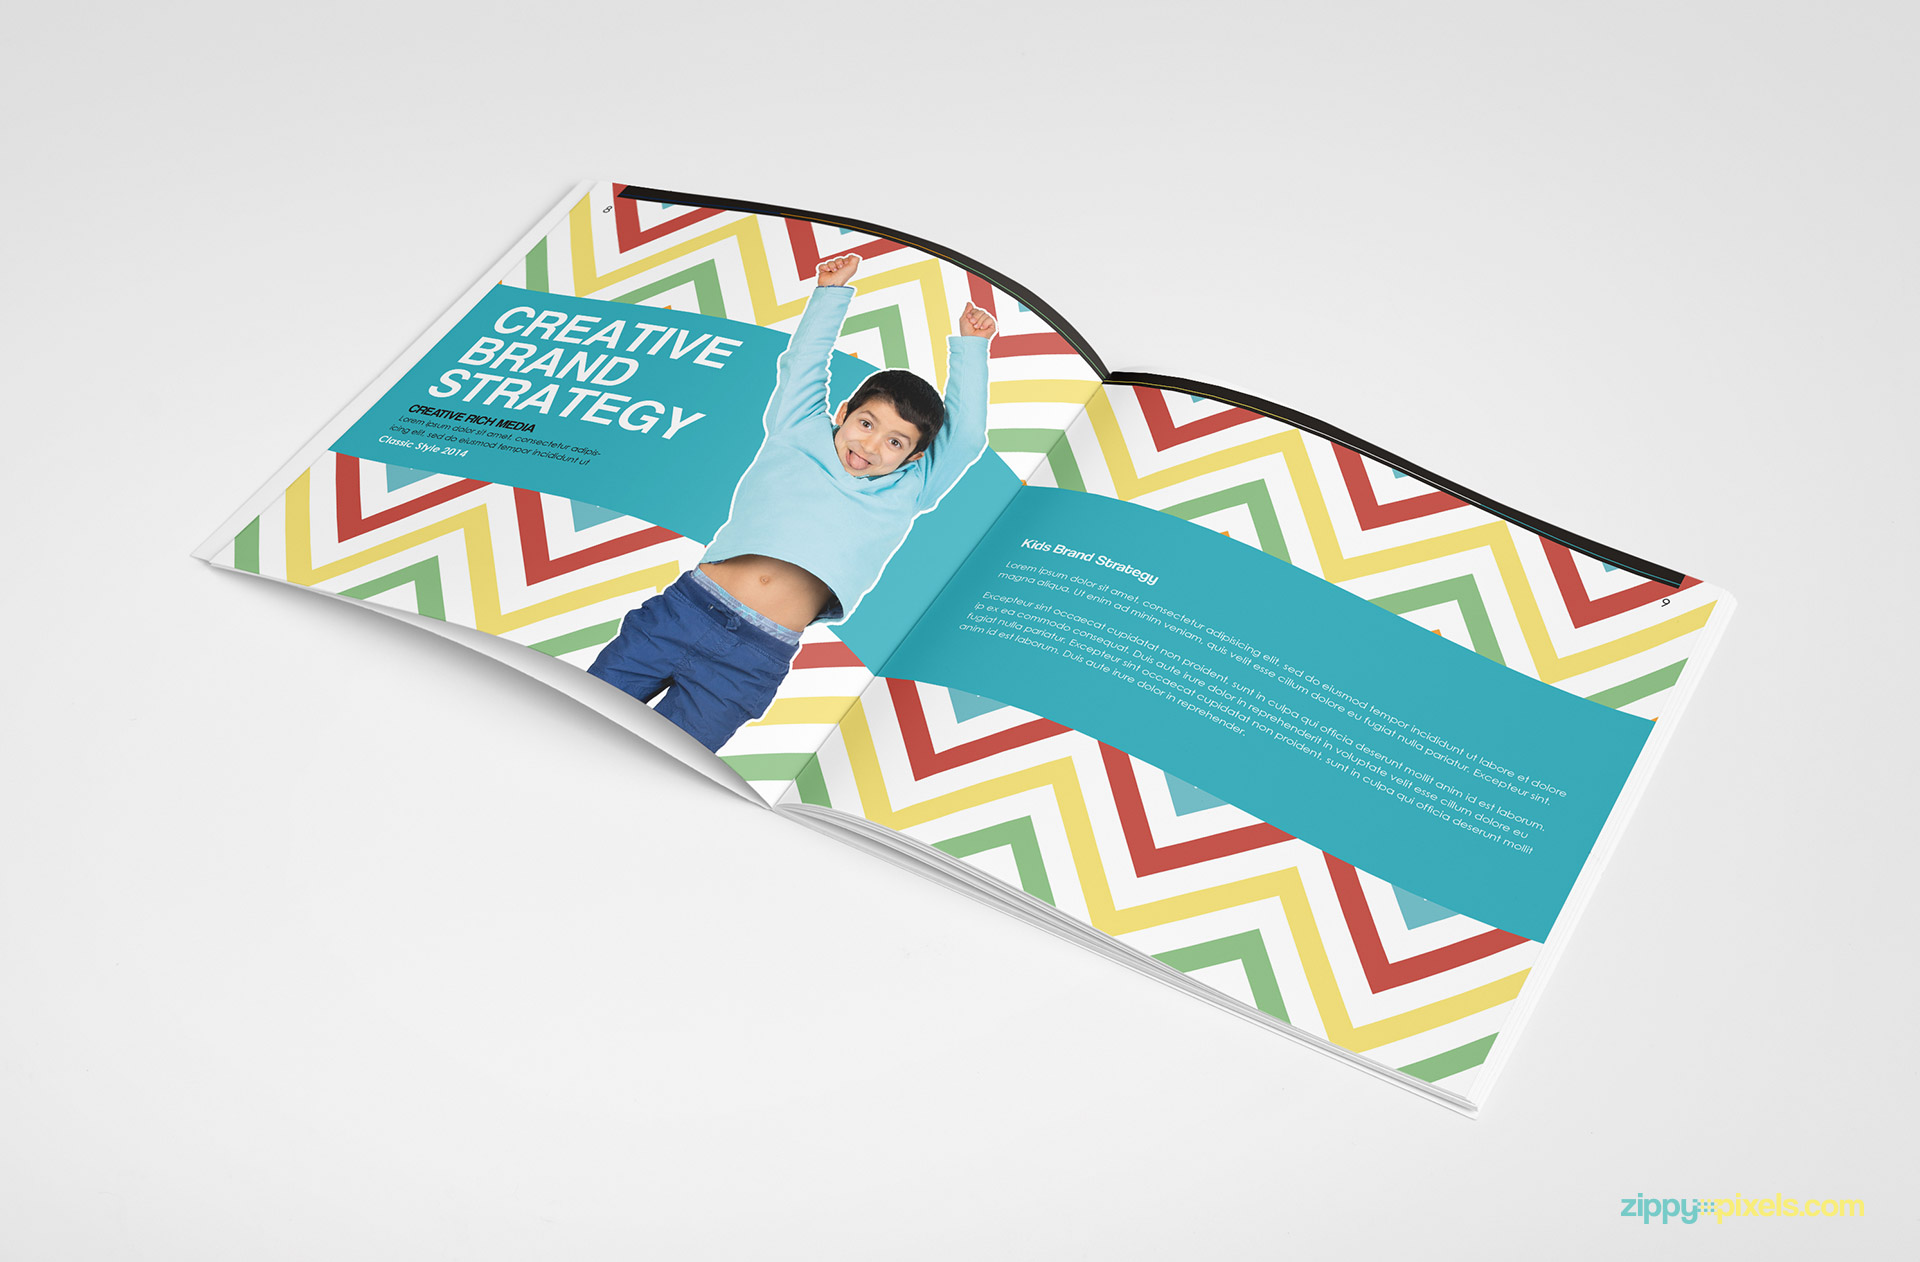 08-brand-book-12-creative-brand-strategy-creative-rich-media-kids-brand-strategy